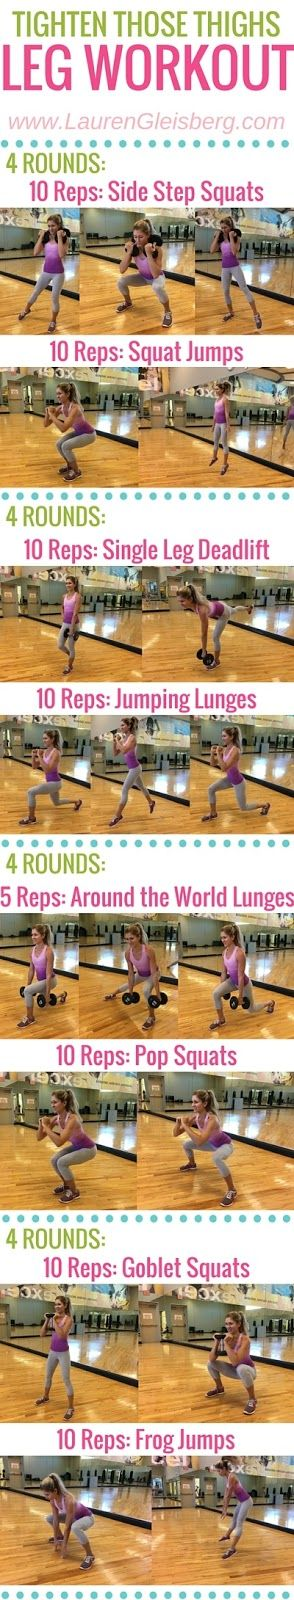 TIGHT THIGHS & BUTT LEG WORKOUT | click for more workouts to tighten and sculpt